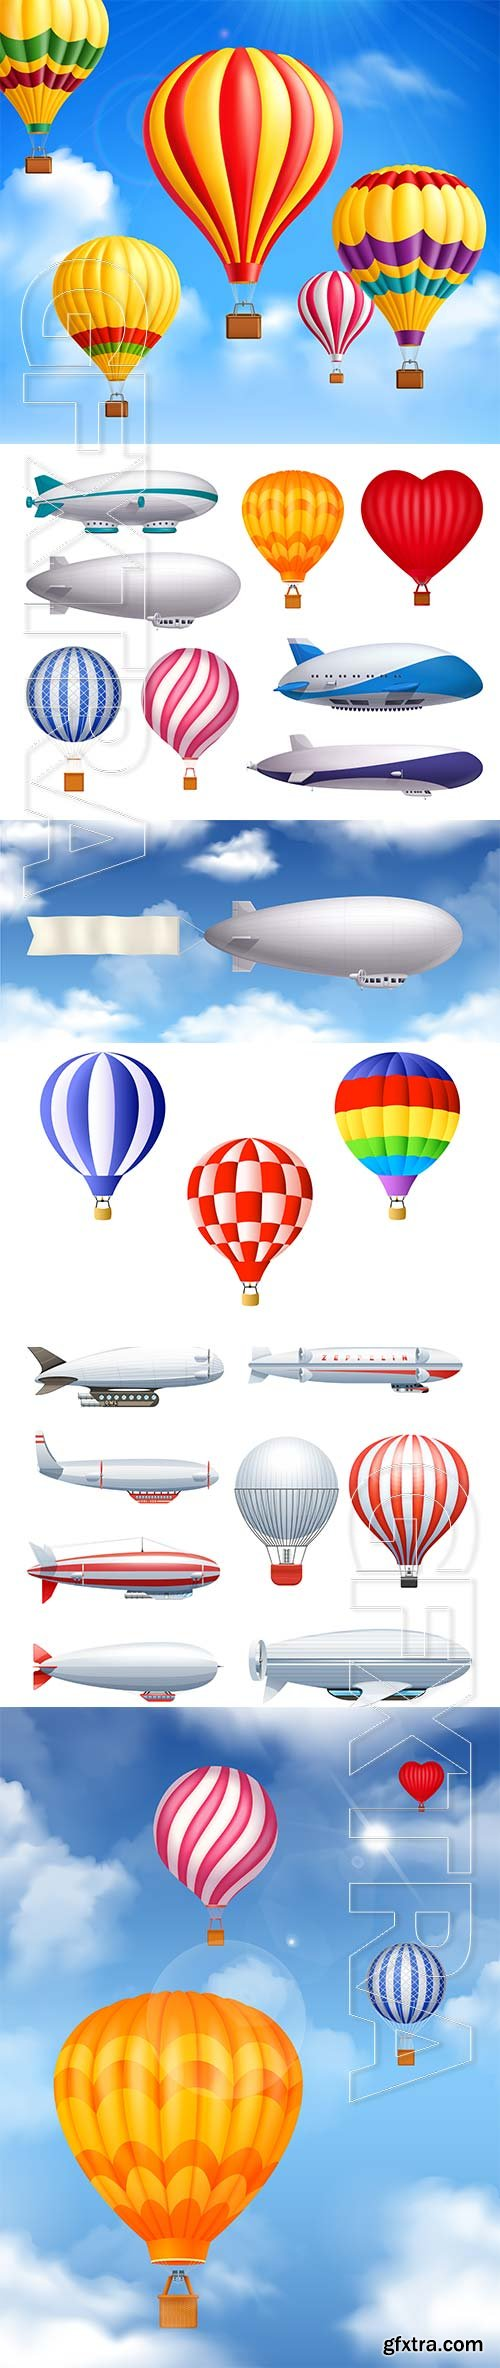 Dirigible and balloons transportation realistic vector set